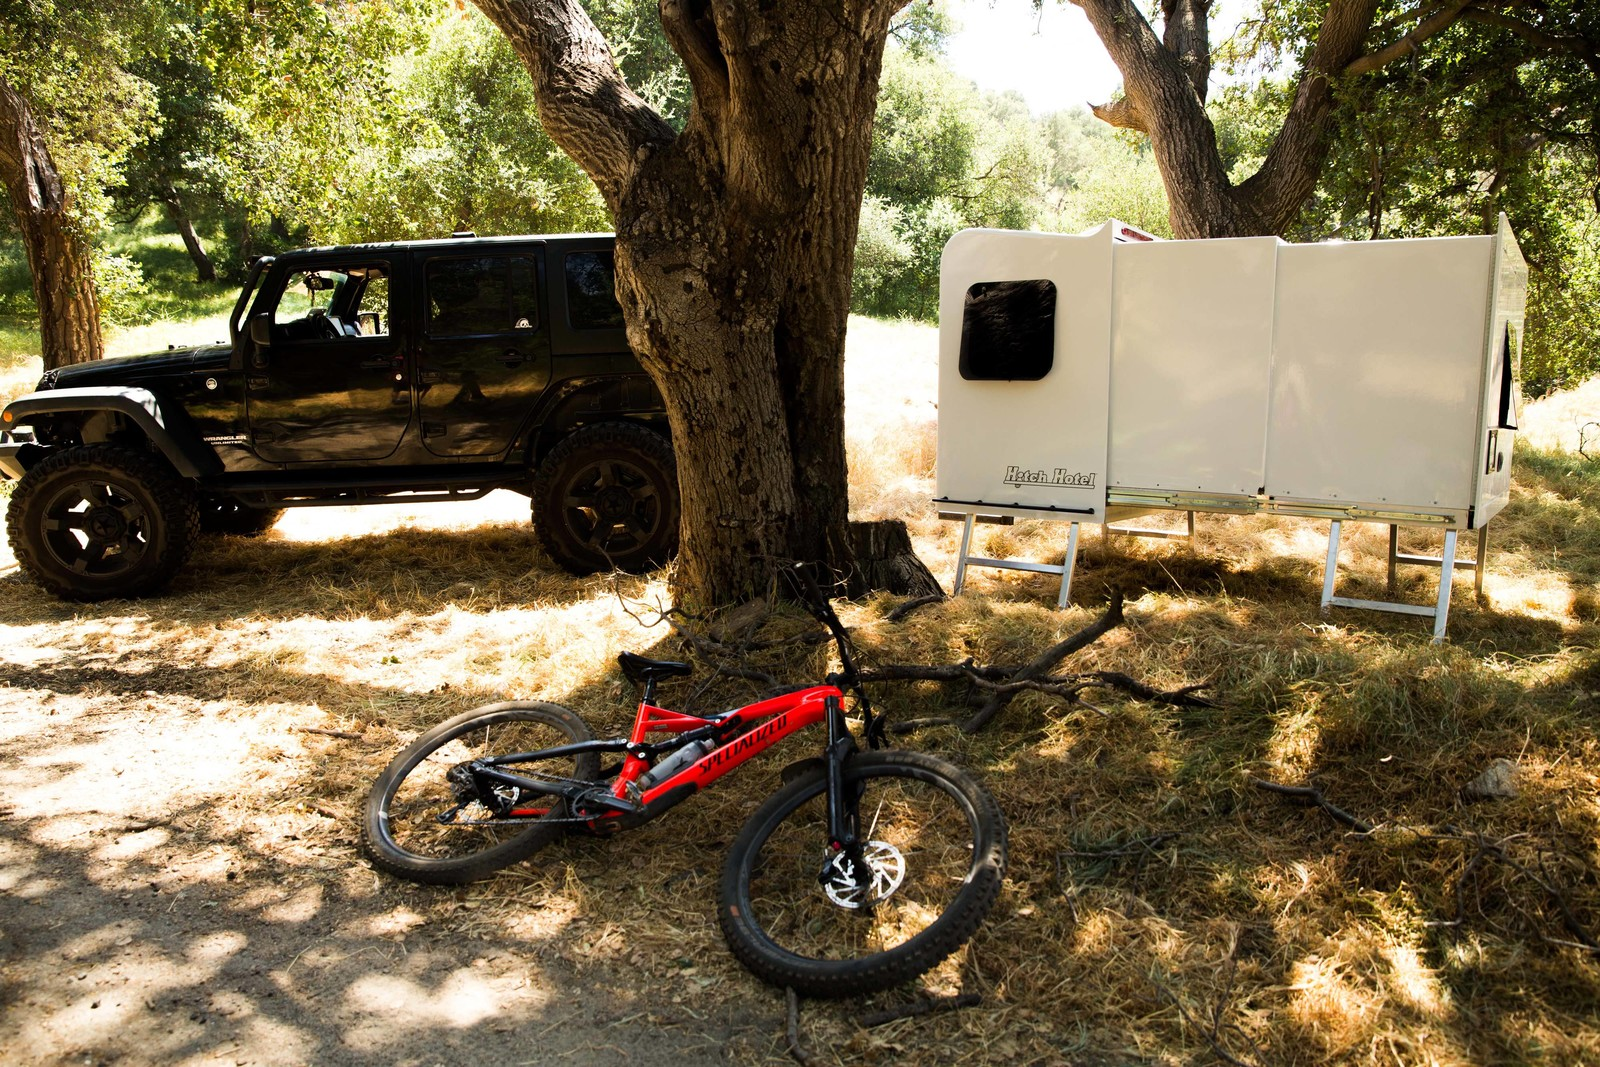 Hitch Hotel Inc. - The World's First Expandable, Wheel-less Trailer